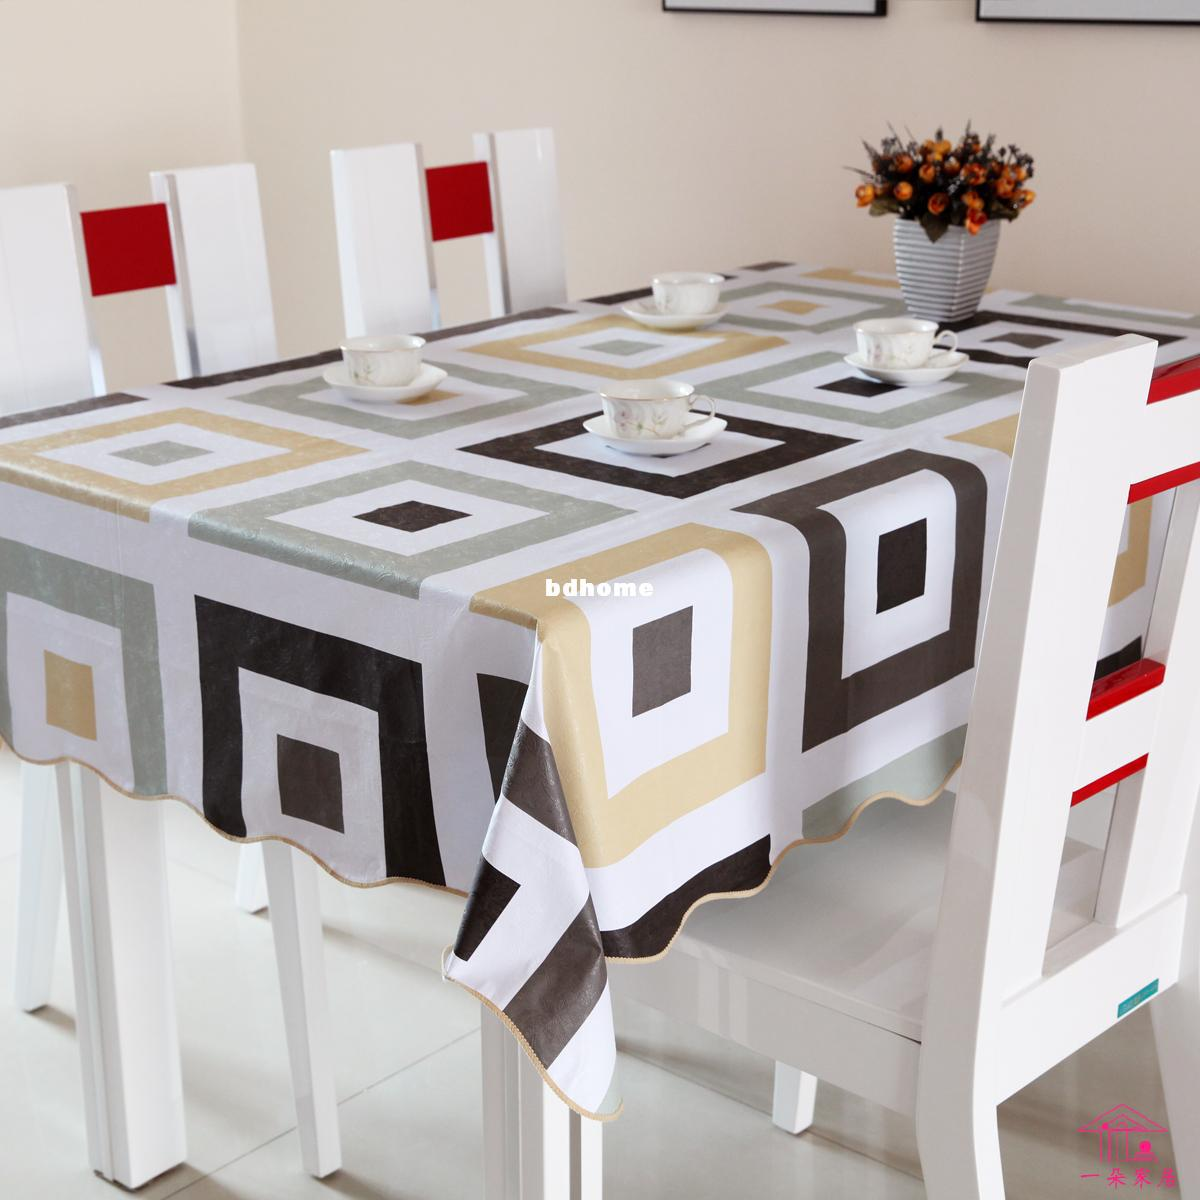 Pvc Table Cloth Plastic Disposable Waterproof Dining Table Cloth Tablecloth  Table Cloth Coffee Tablecloth 150 * 200cm Kitchen Tablecloth Discount Linen  ...